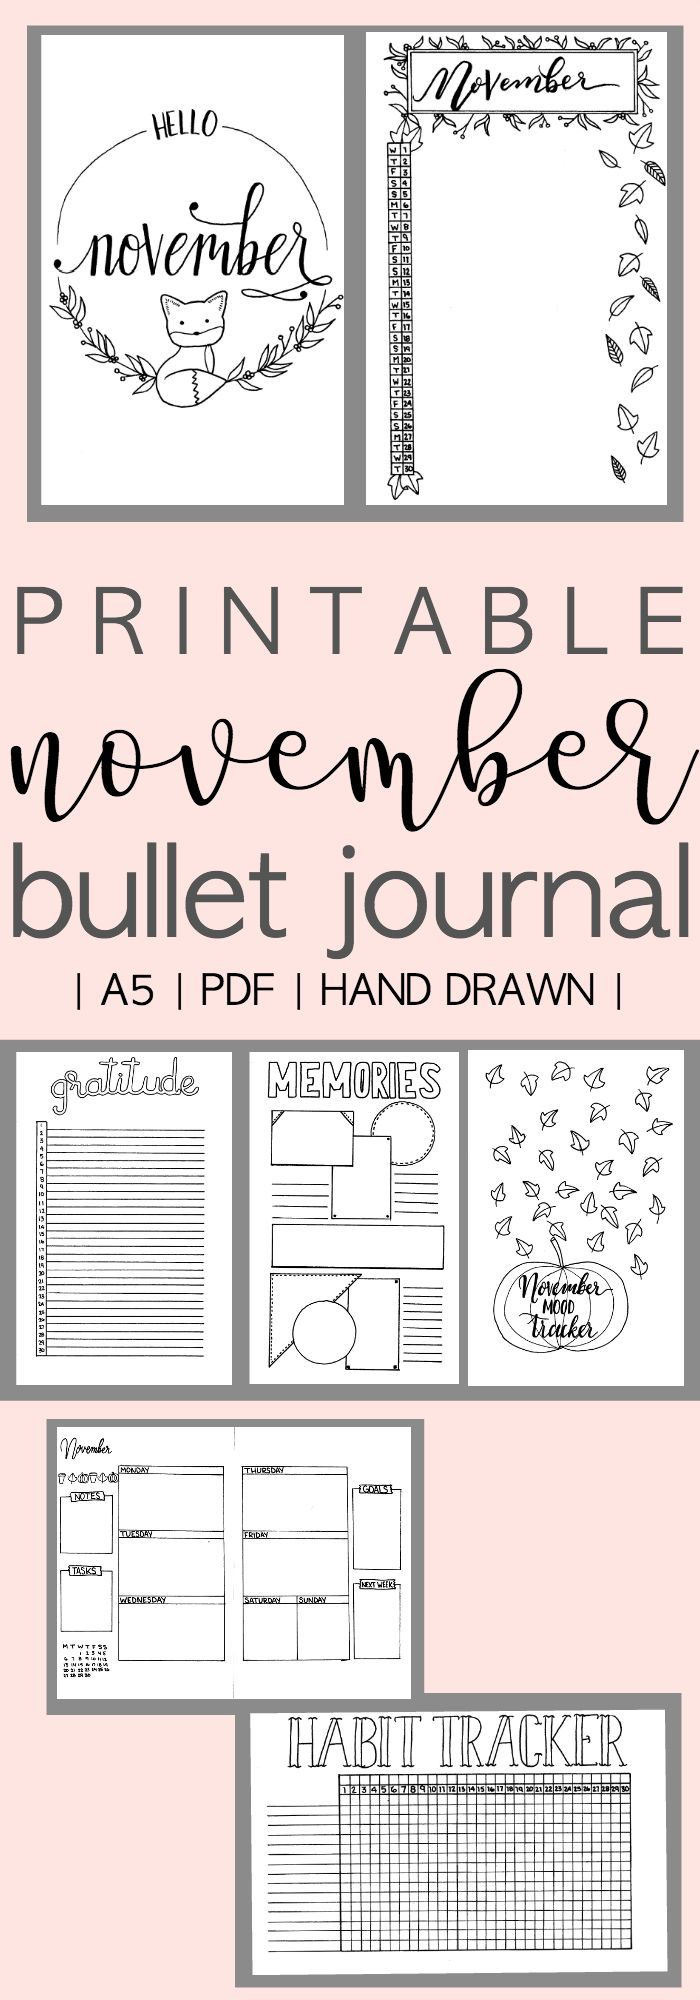 Printable Bullet Journal Monthly Setup for November 2017